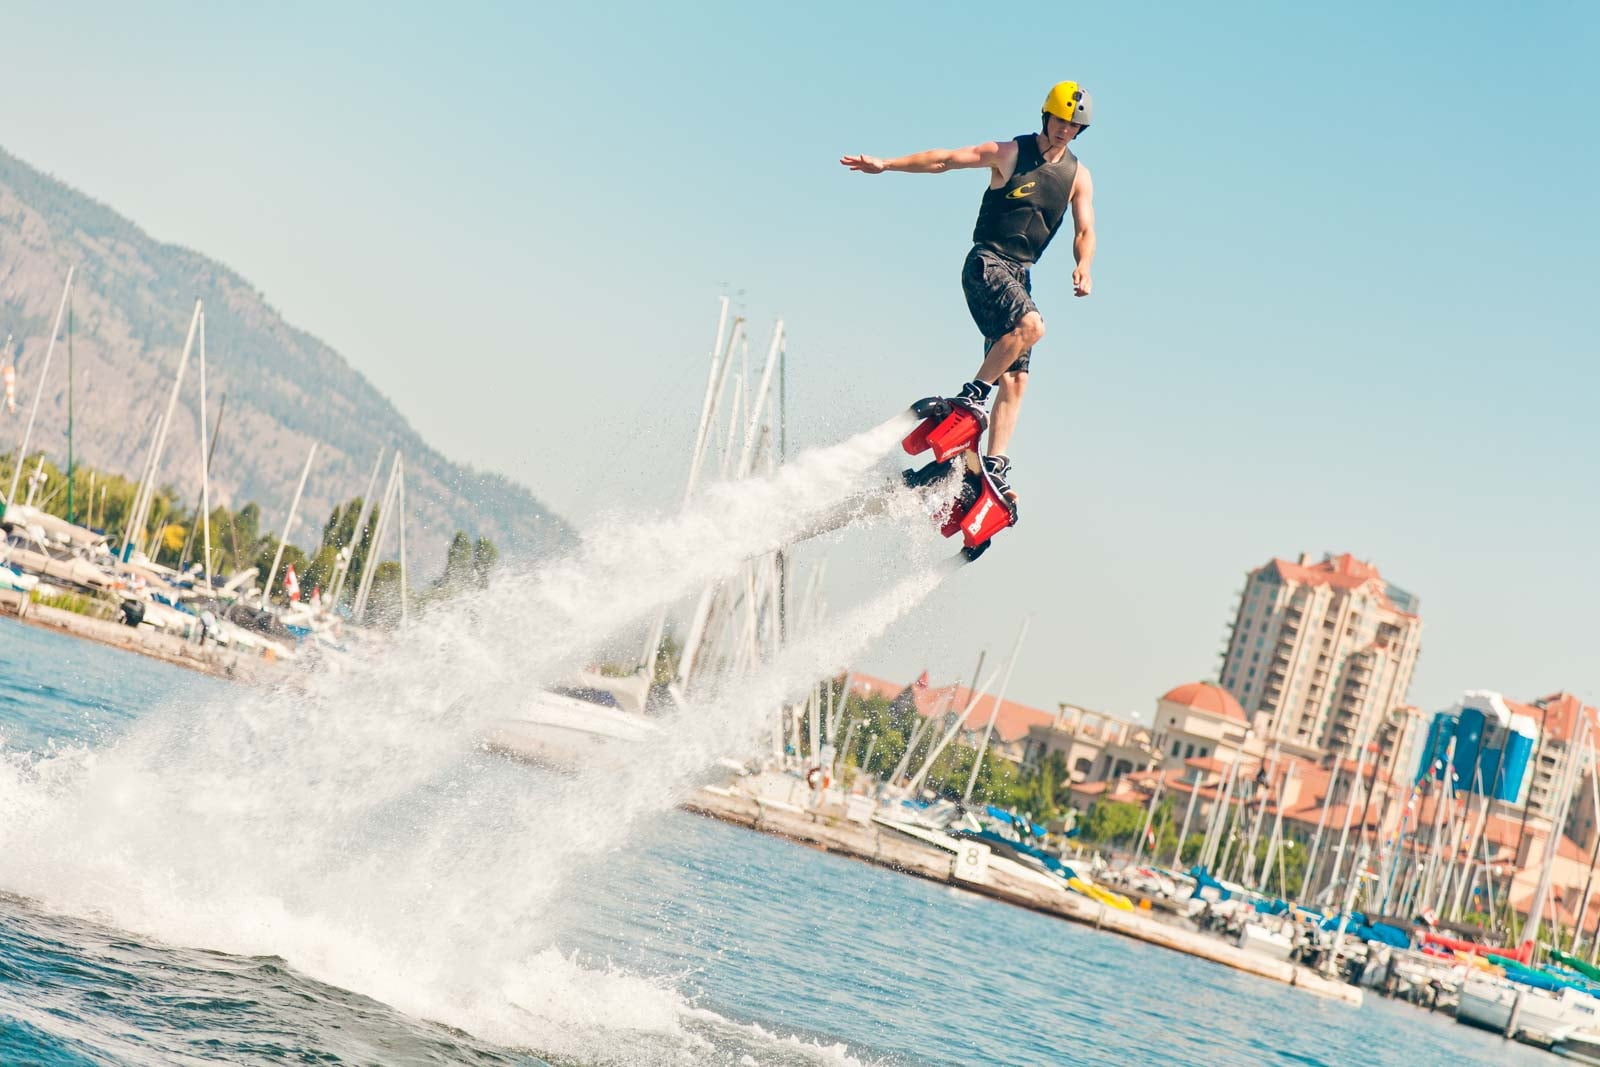 Flyboarding in downtown Kelowna by the sails